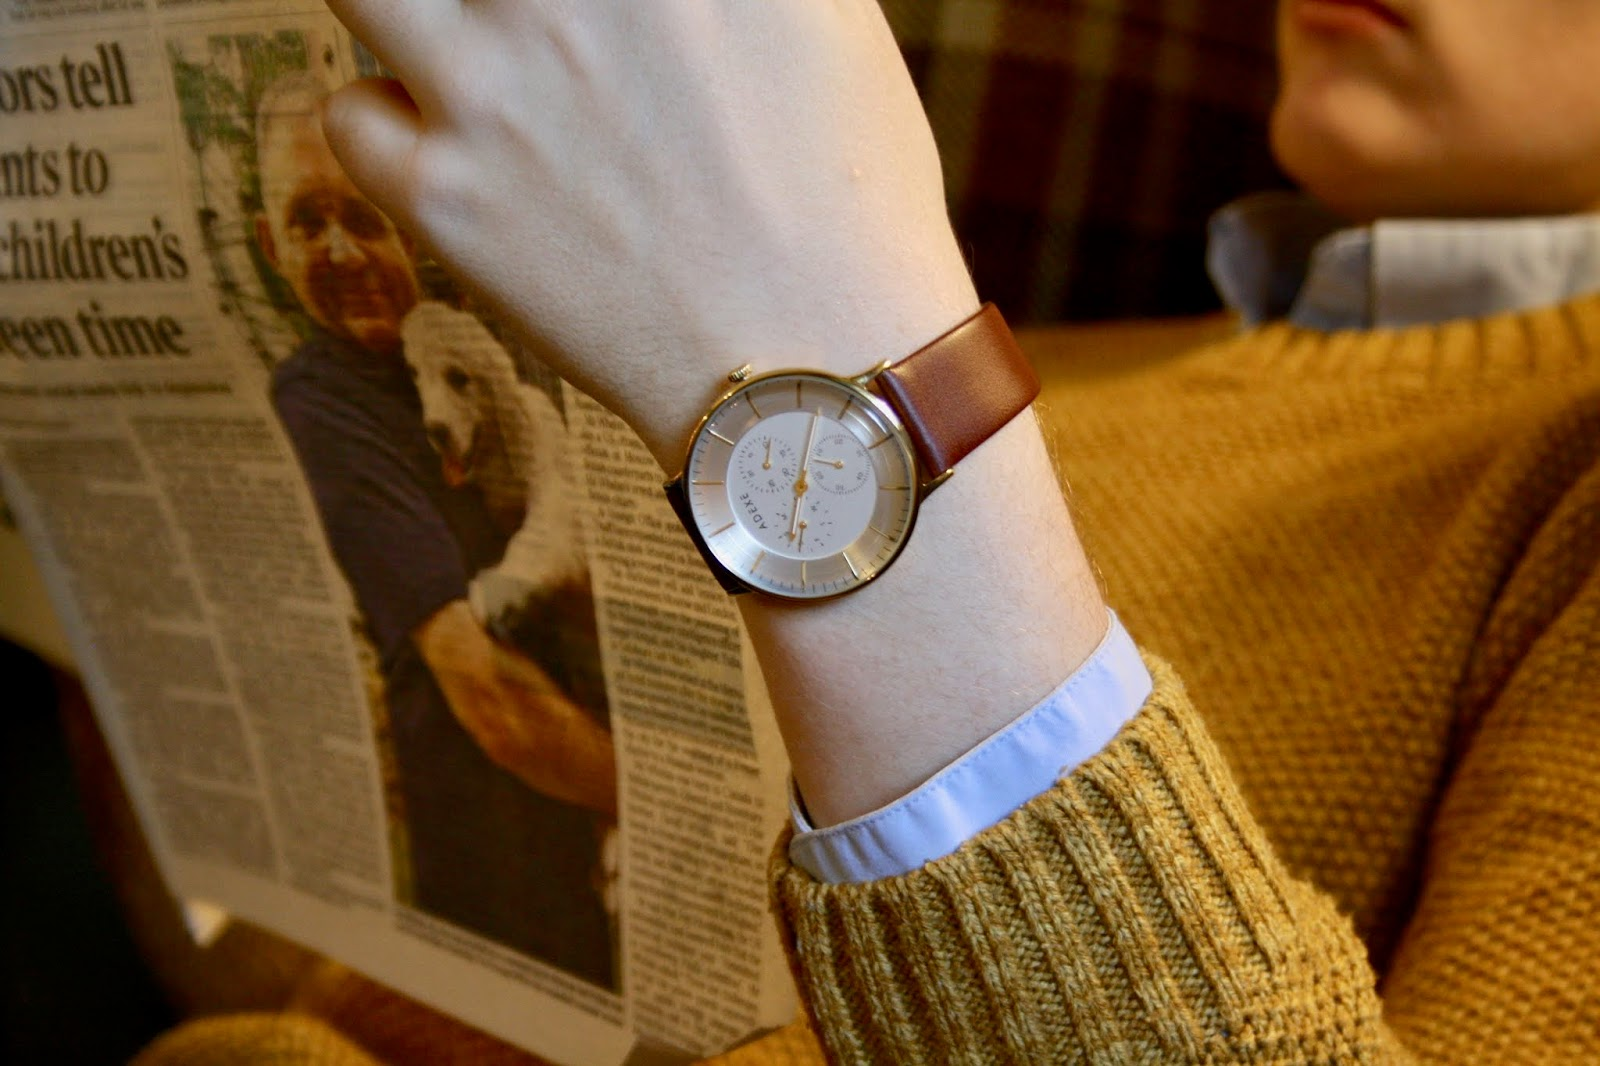 close up of a gold watch face, blue shirt cuff and mustard jumper, a newspaper in the background